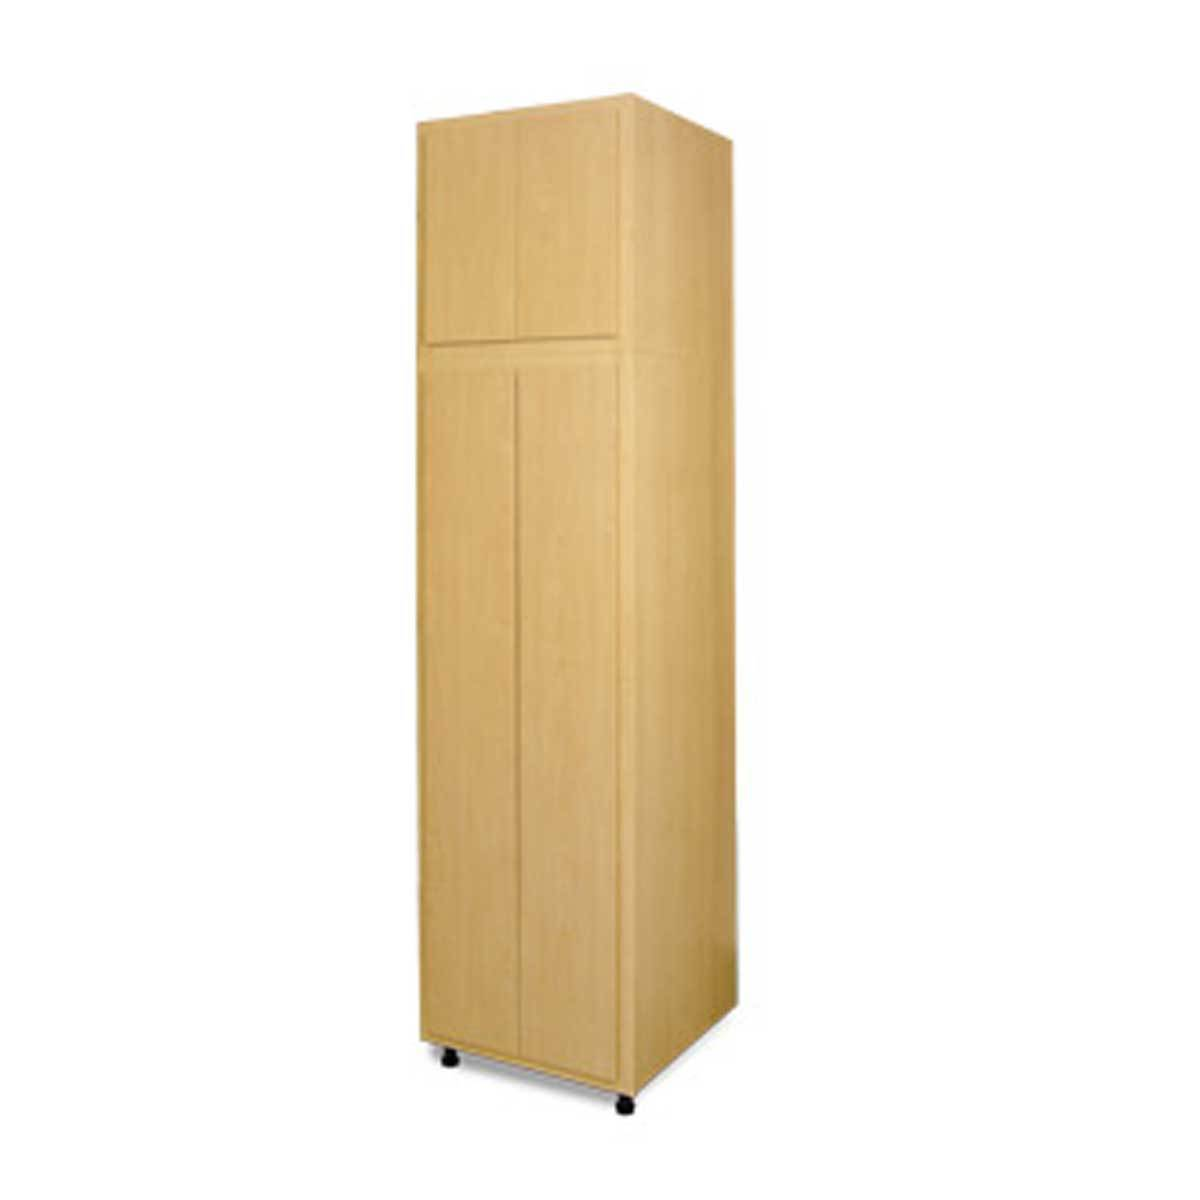 "Slide-Lok 2' x 8' x 24"" Cabinet Set - Natural Maple"